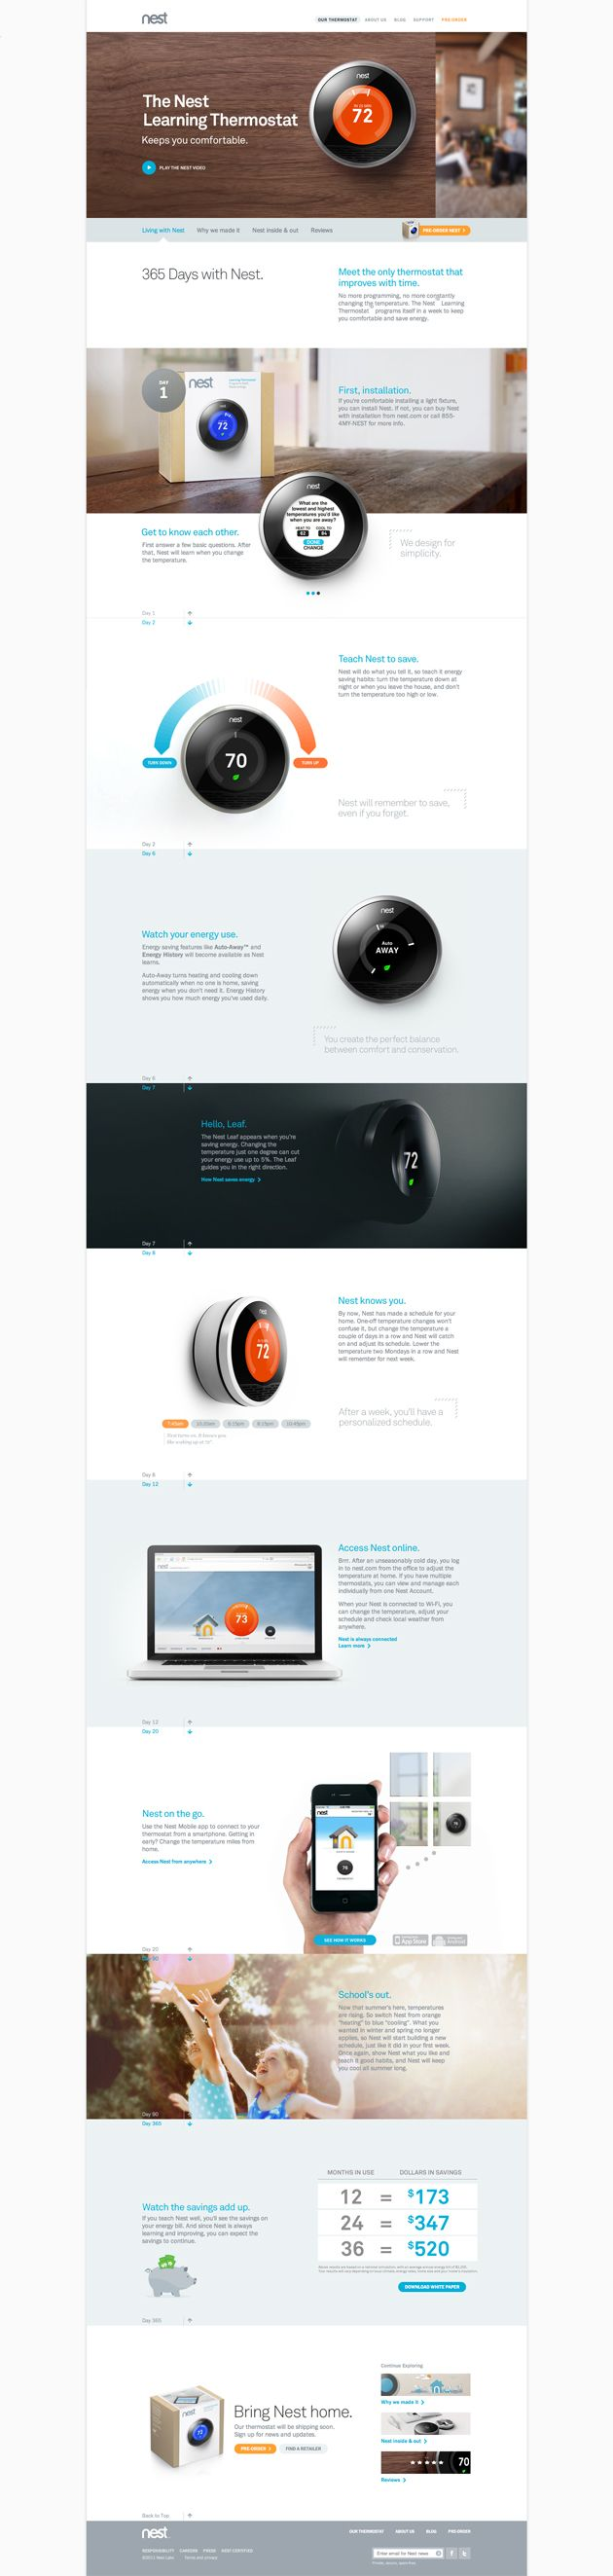 Life with Nest Thermostat in 2020 Web design, Web design